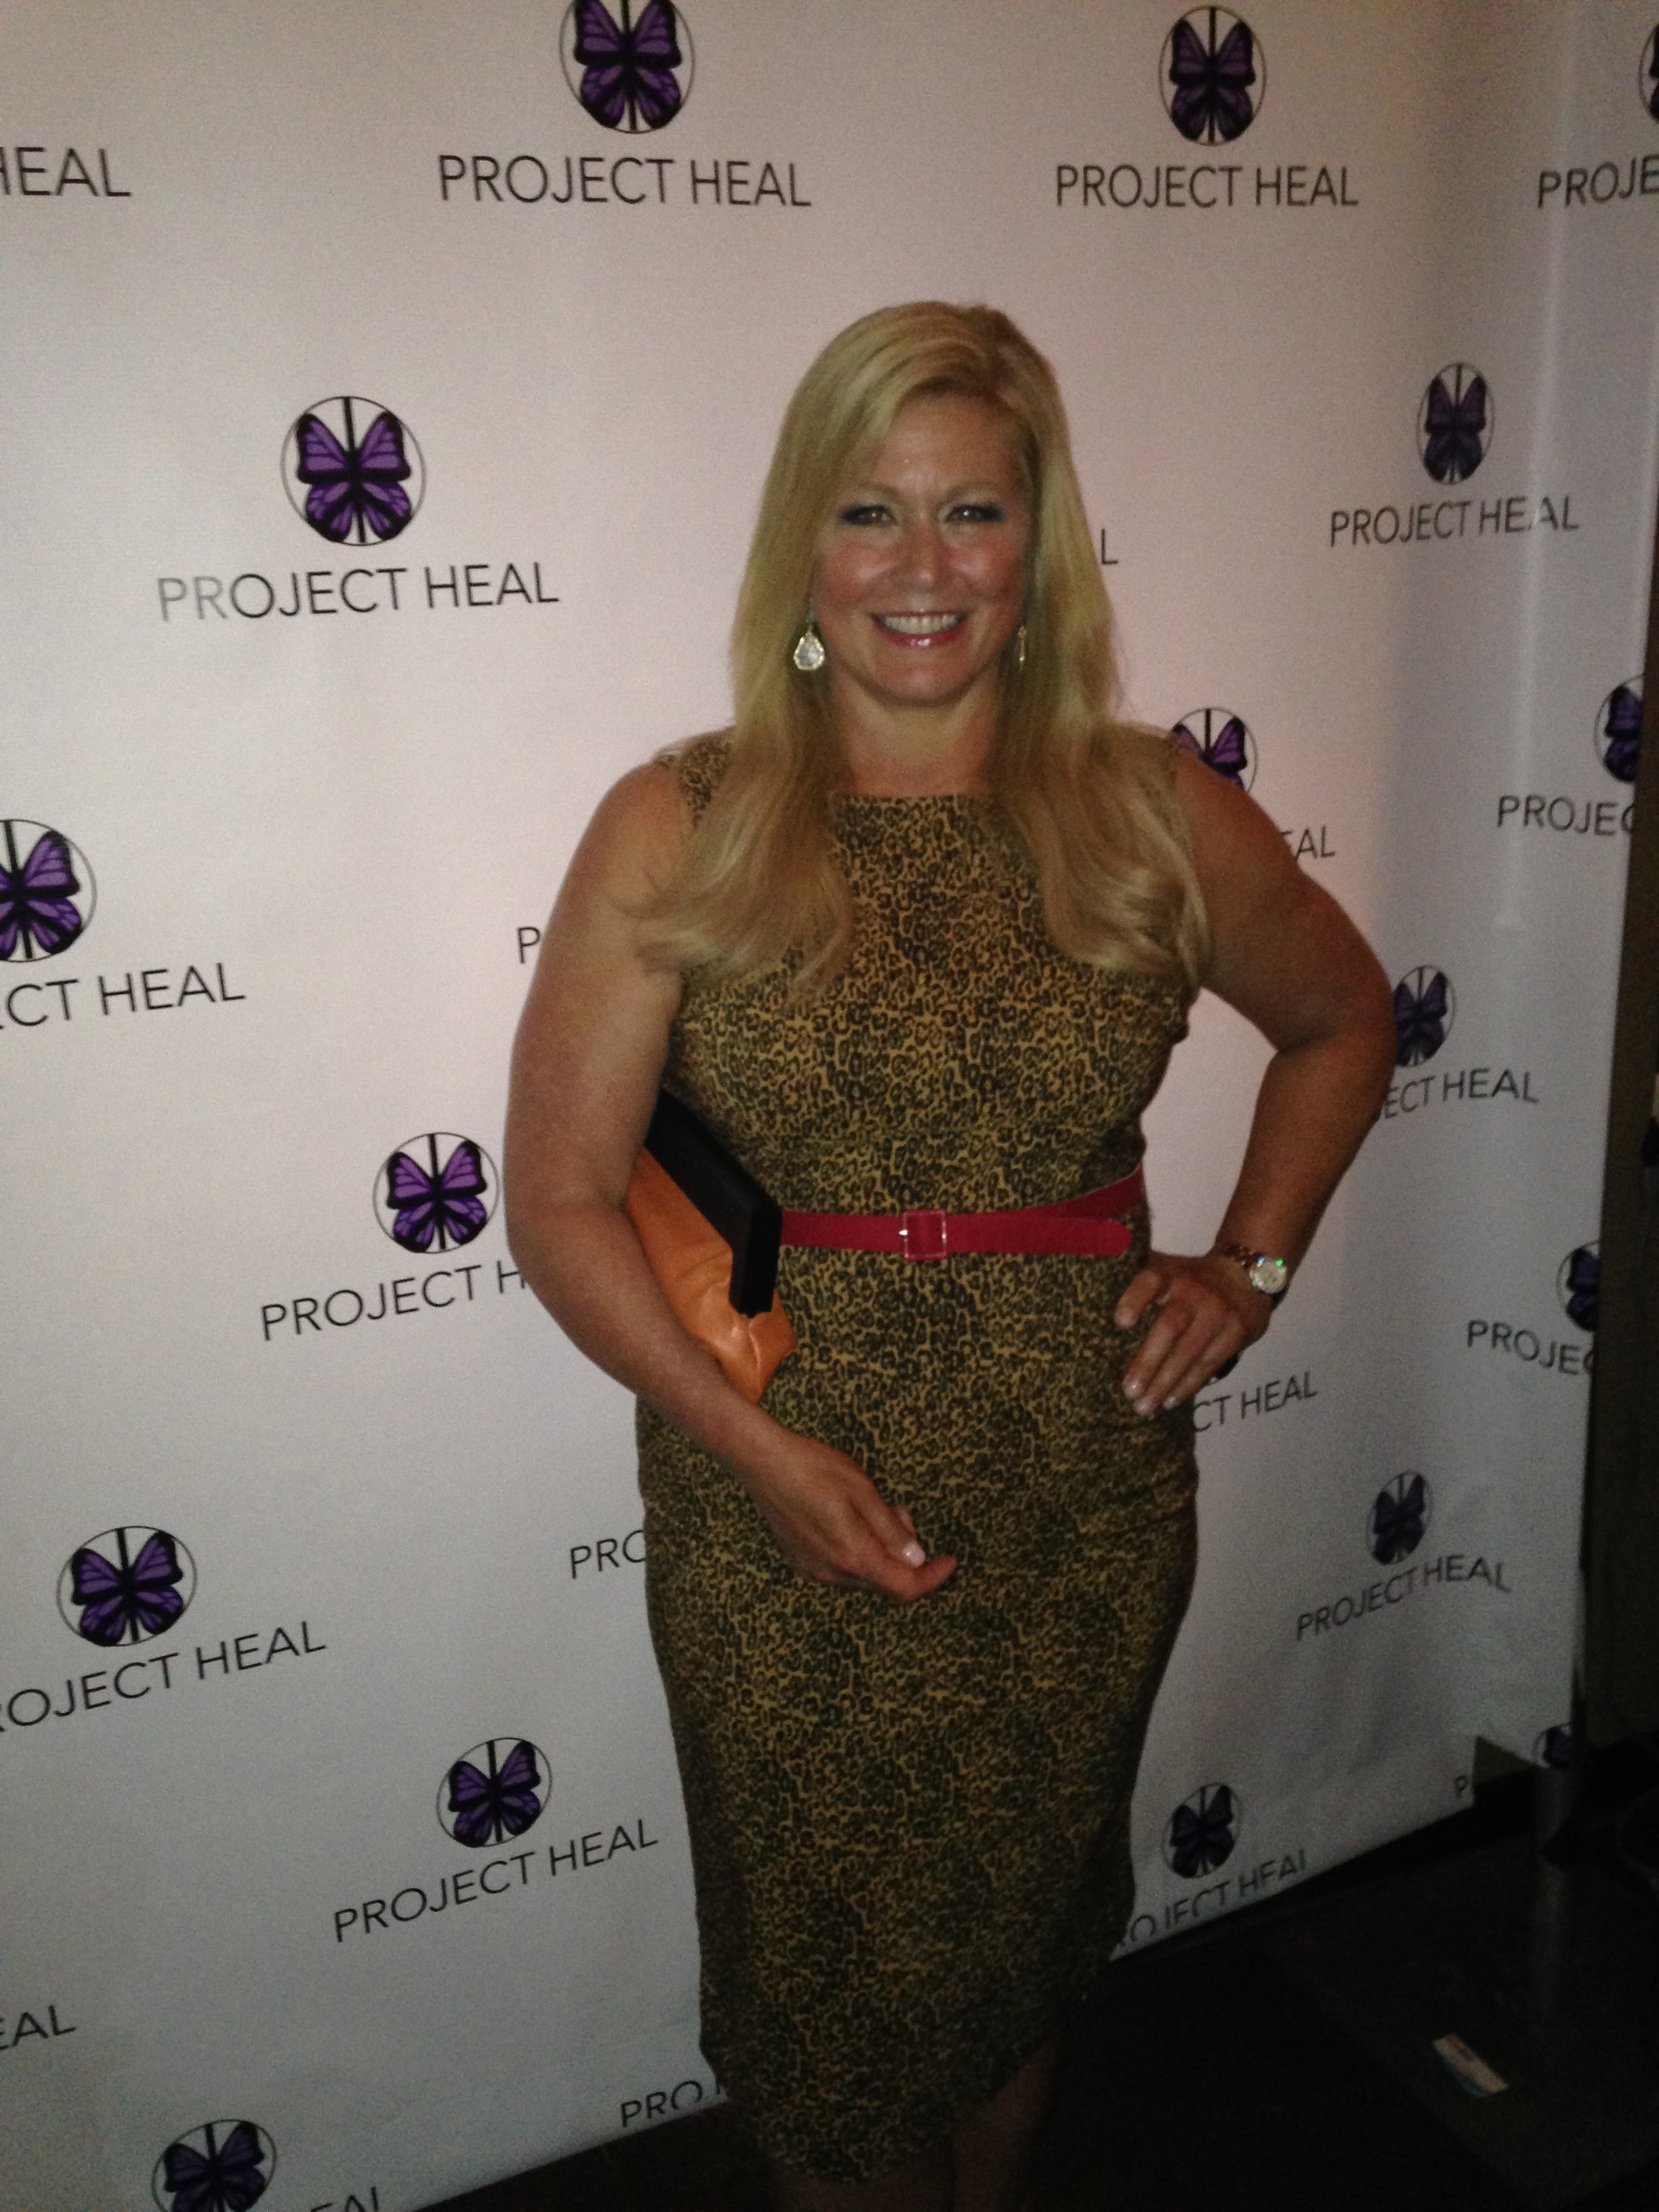 EMME at Project Heal